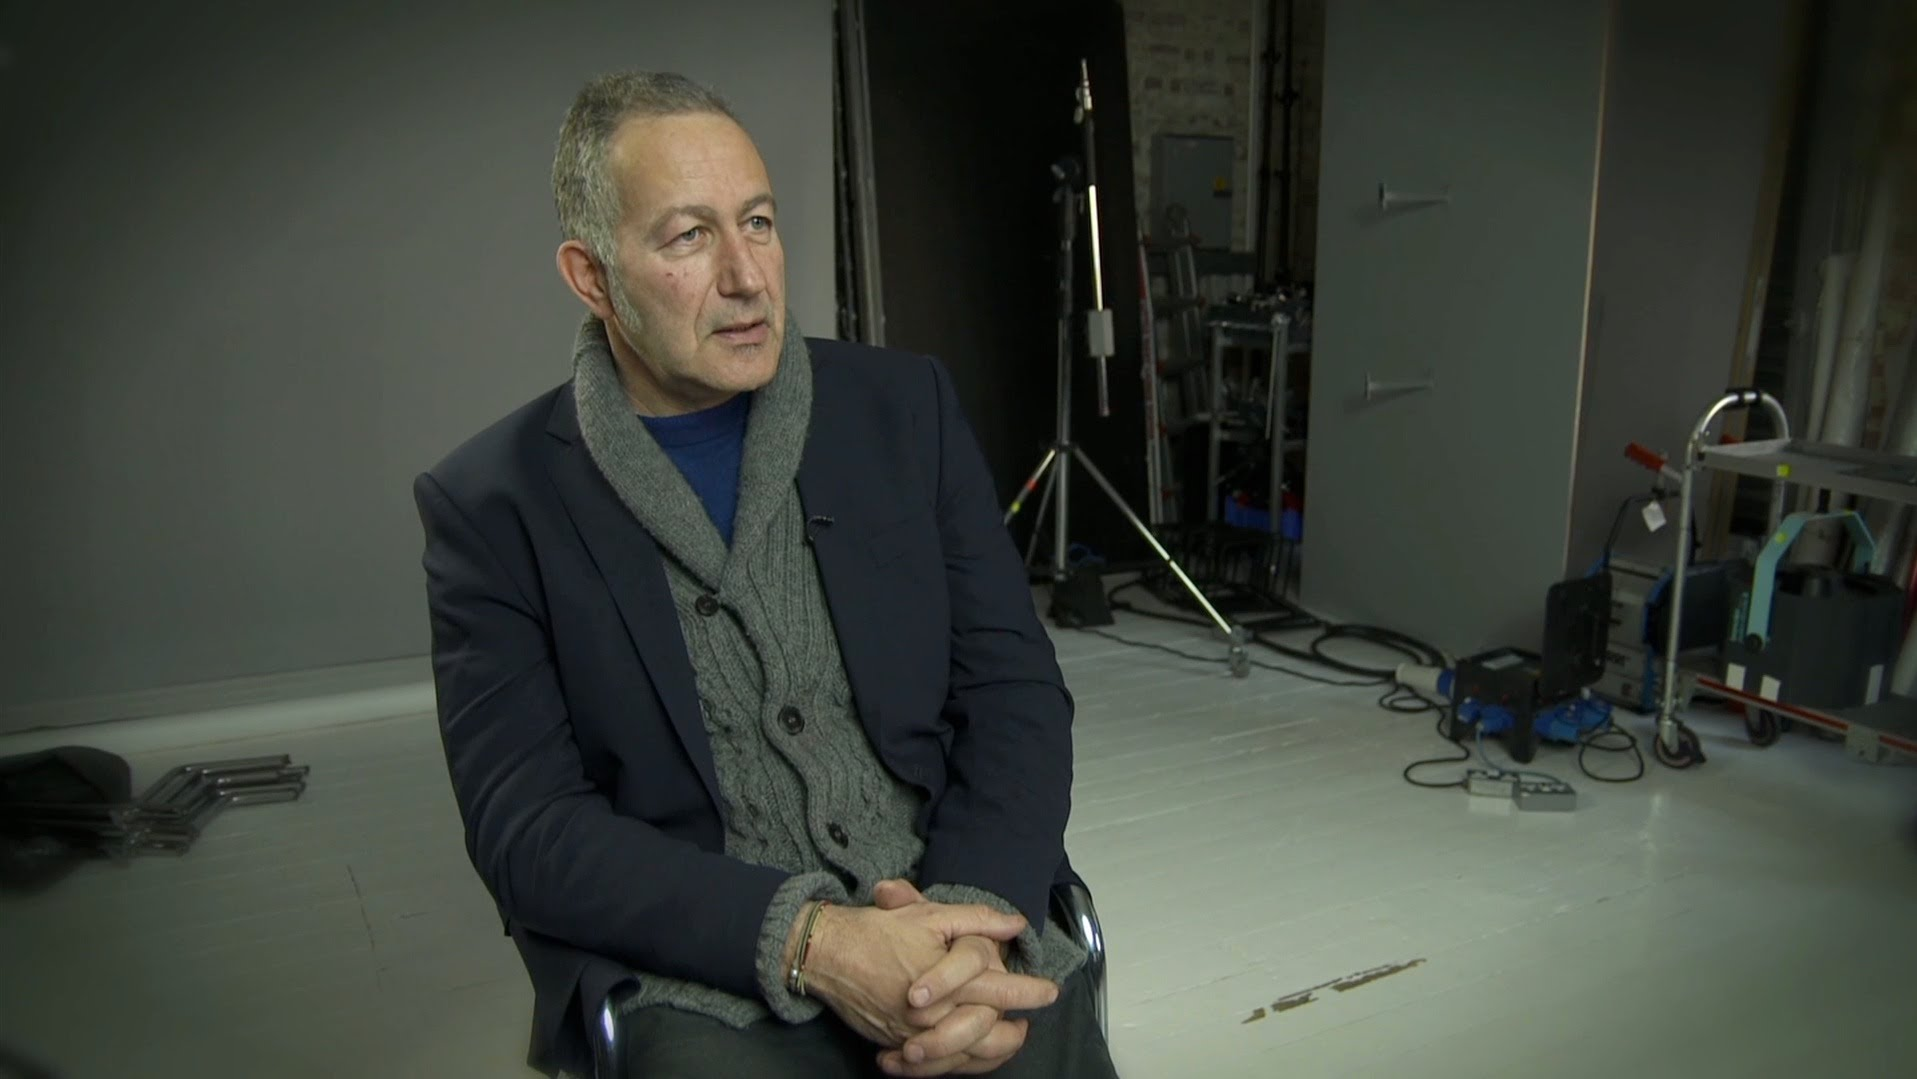 Nadav Kander: My Approach to Photography and Portraiture